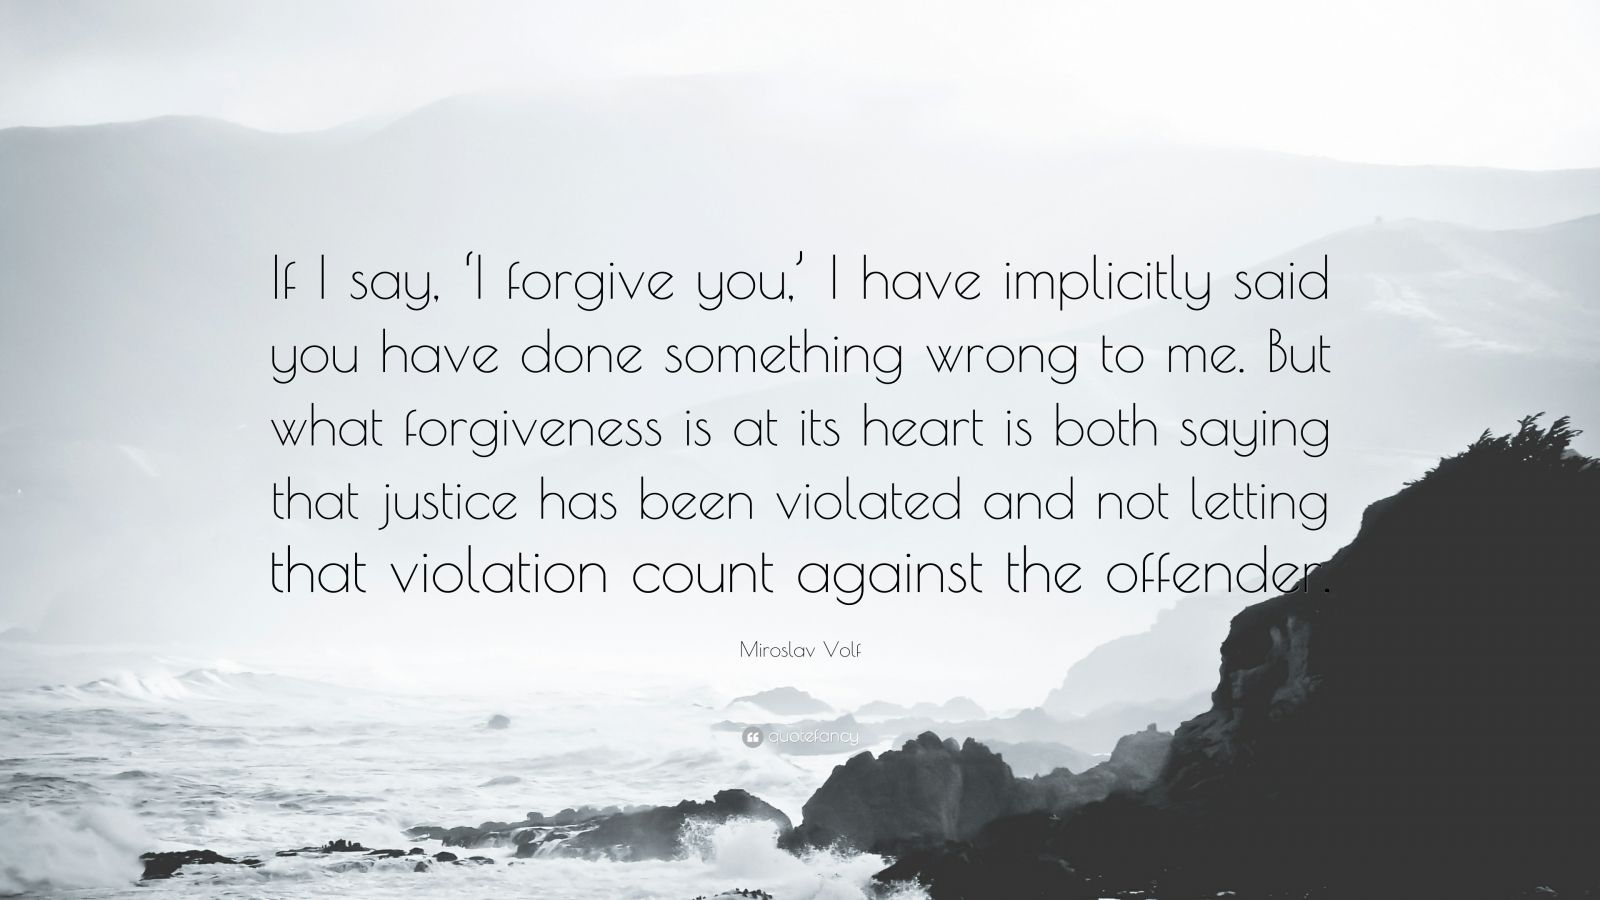 "Miroslav Volf Quote: ""If I say, 'I forgive you,' I have implicitly said you have done something wrong to me. But what forgiveness is at its heart is both saying that justice has been violated and not letting that violation count against the offender."""